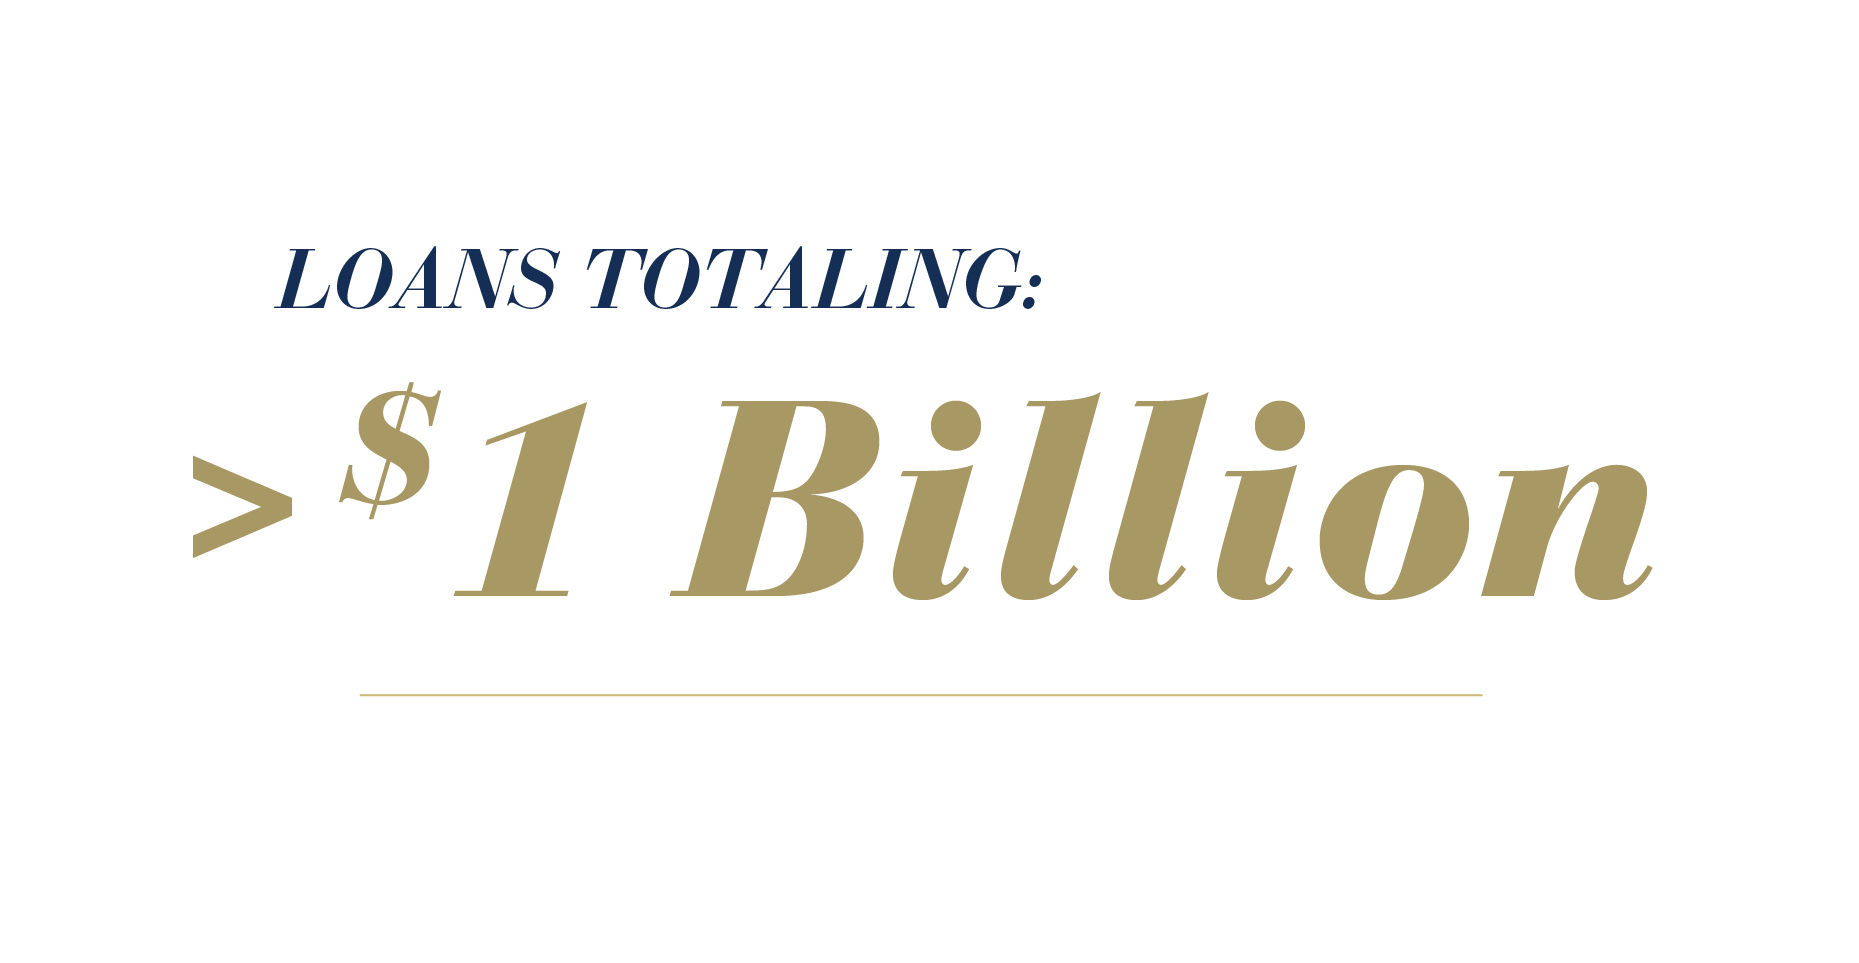 PPP loans totaling more than $1 billion